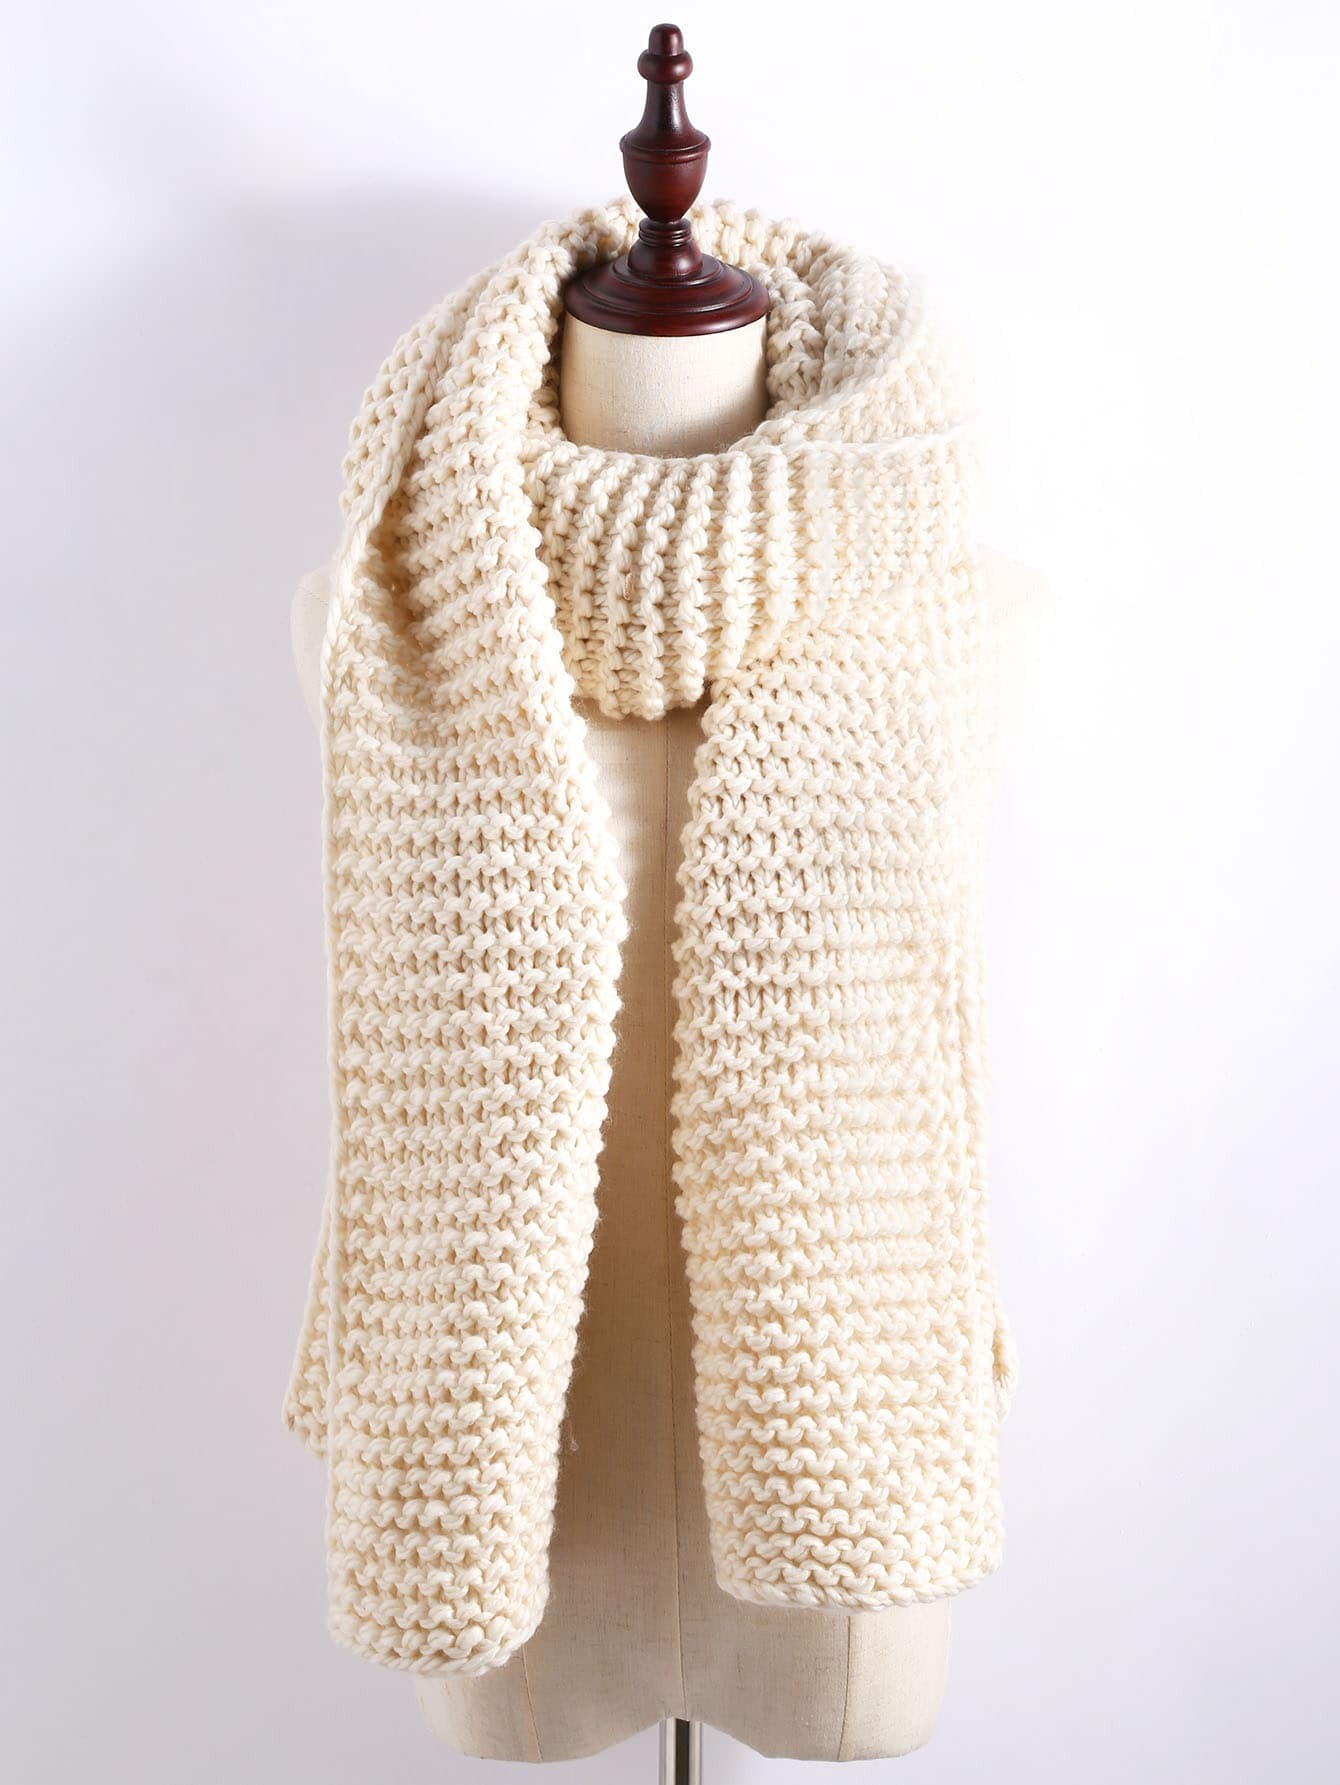 Apricot Chunky Knit Textured Long ScarfApricot Chunky Knit Textured Long Scarf<br><br>color: Apricot<br>size: None